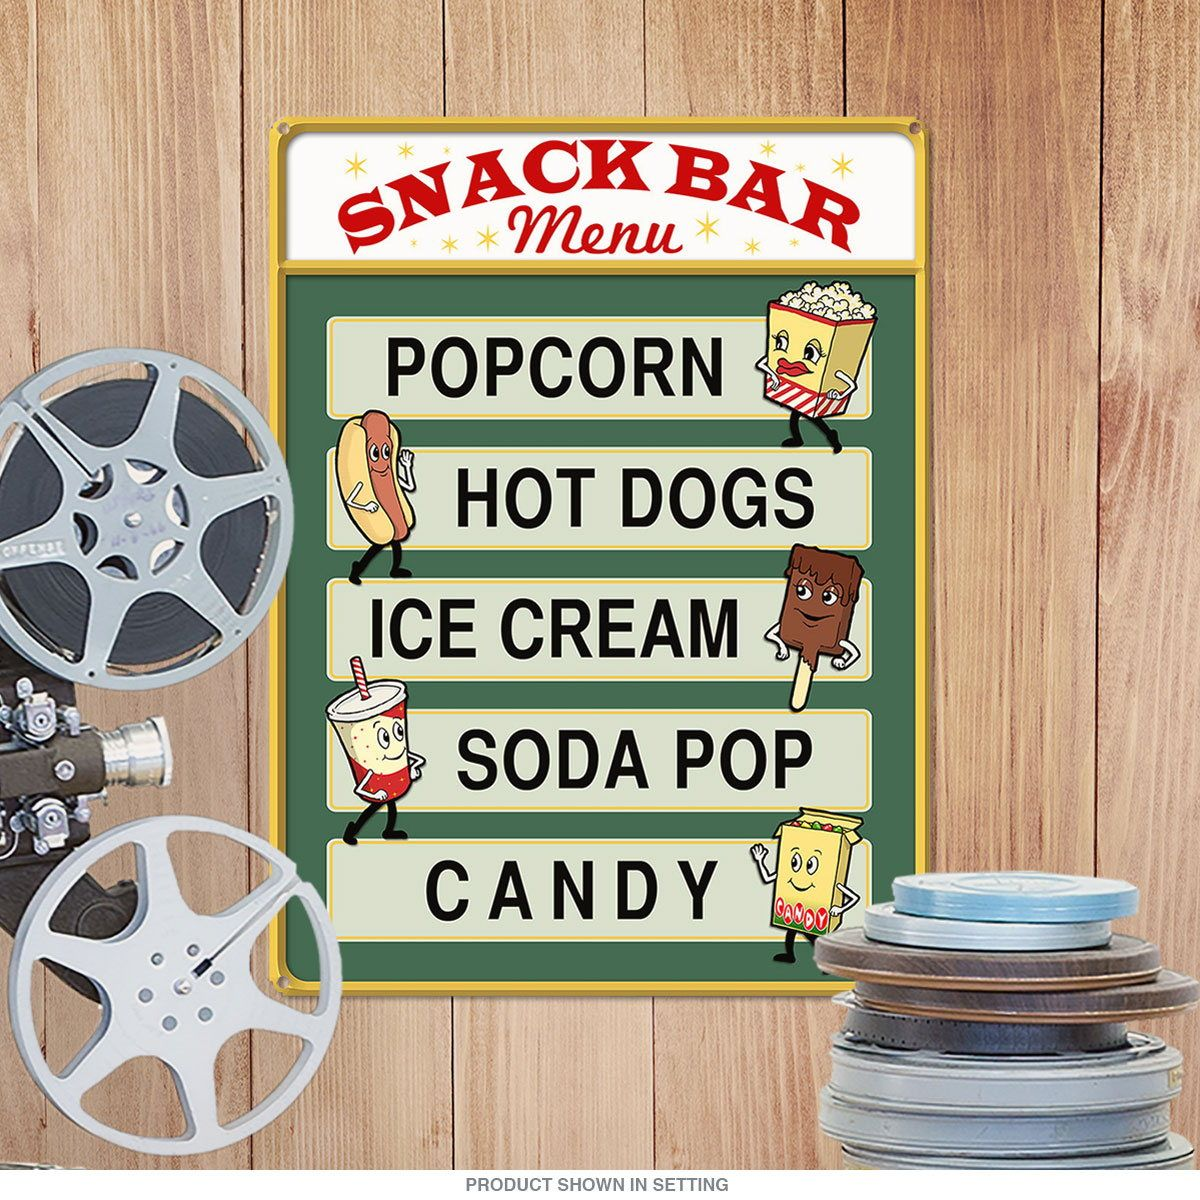 Theater Room Snack Bar: Pin By Kris Kringle On Advertising In 2020